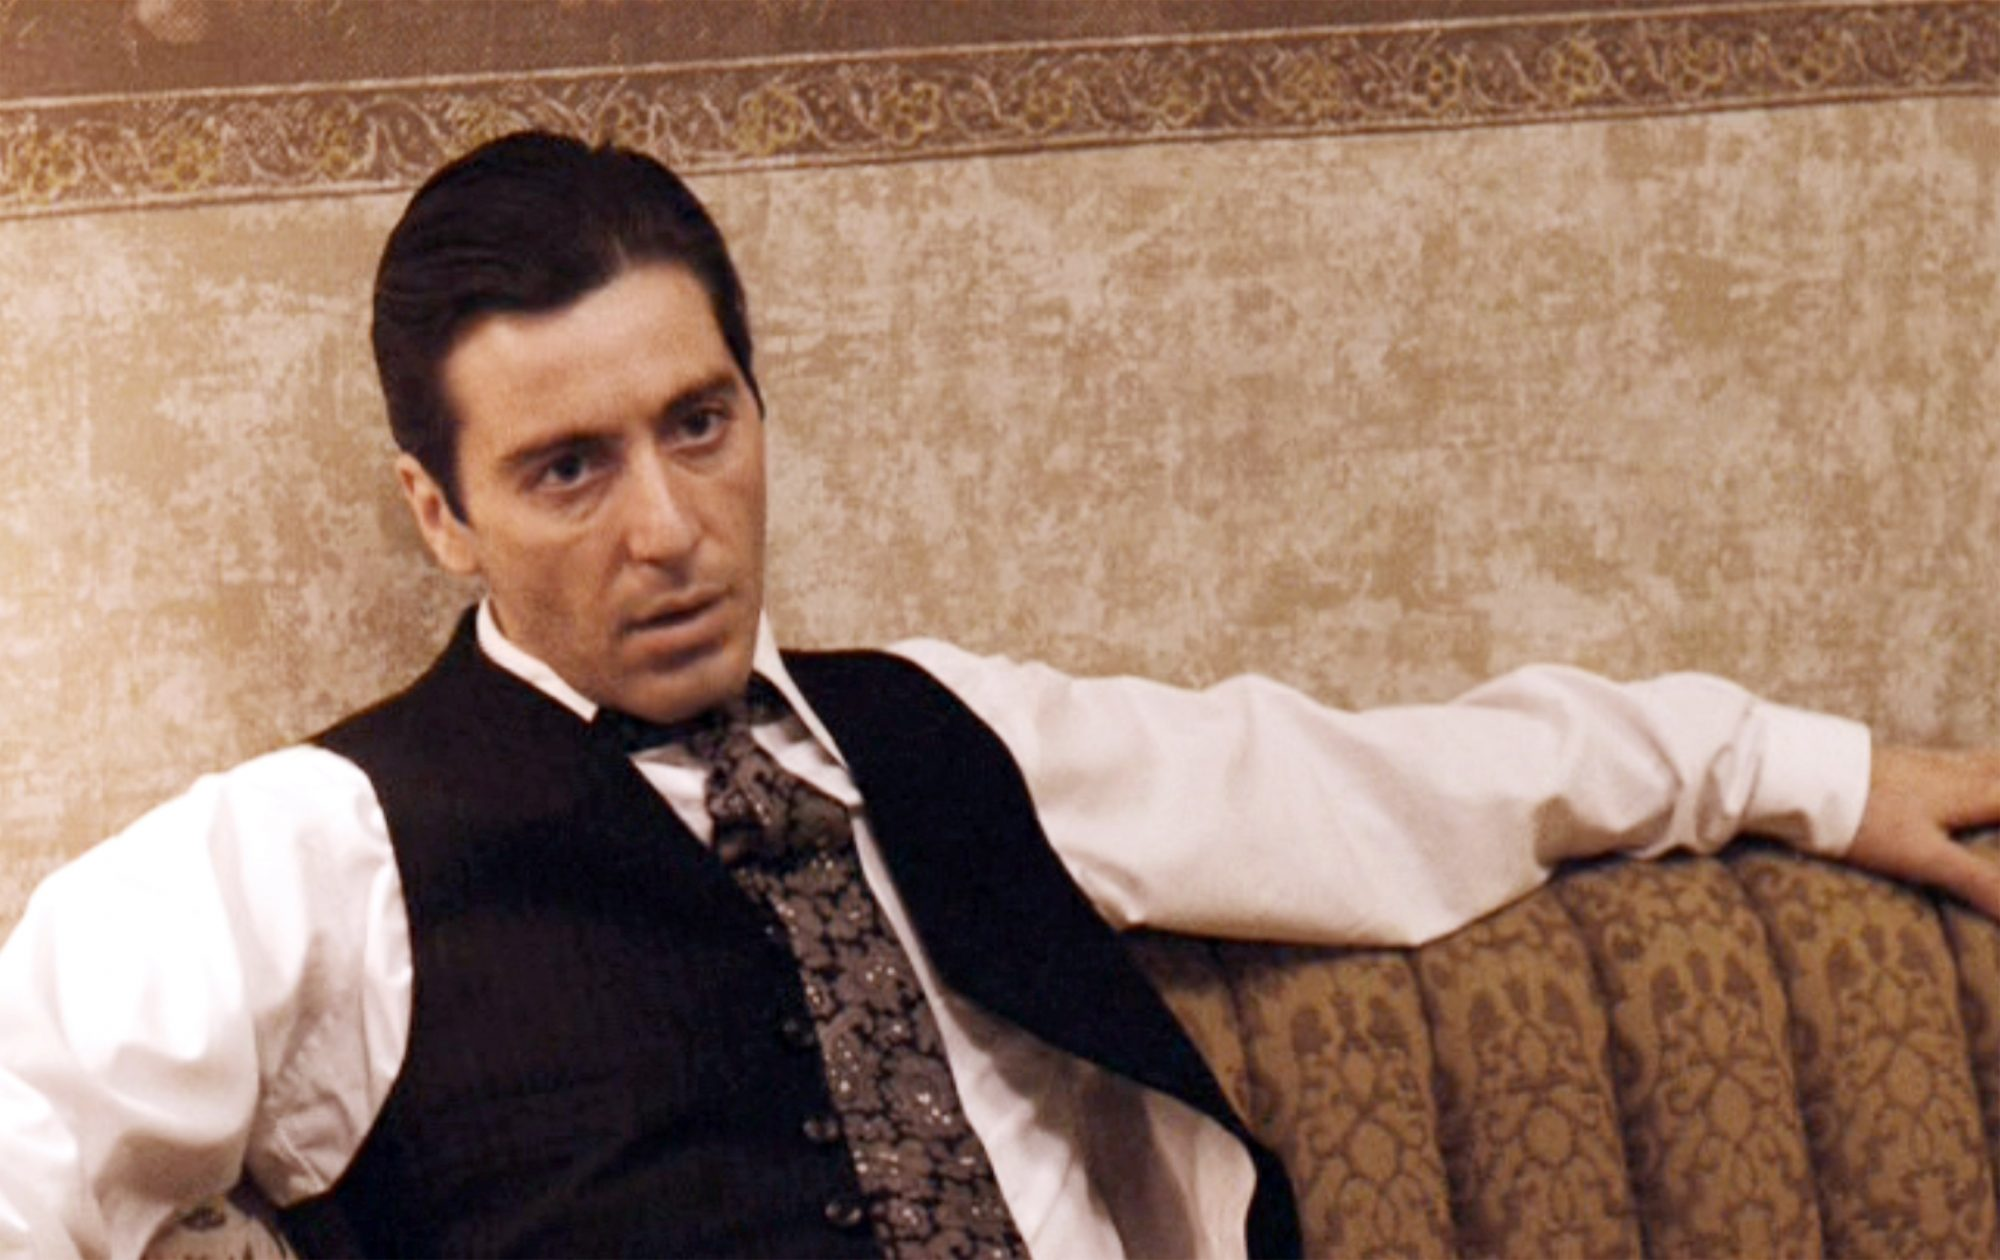 """LOS ANGELES - DECEMBER 20: The movie """"The Godfather: Part II"""", directed by Francis Ford Coppola, based on the novel 'The Godfather' by Mario Puzo. Seen here, Al Pacino as Don Michael Corleone. Initial theatrical wide release December 20, 1974. Screen capture. Paramount Pictures. (Photo by CBS via Getty Images)"""